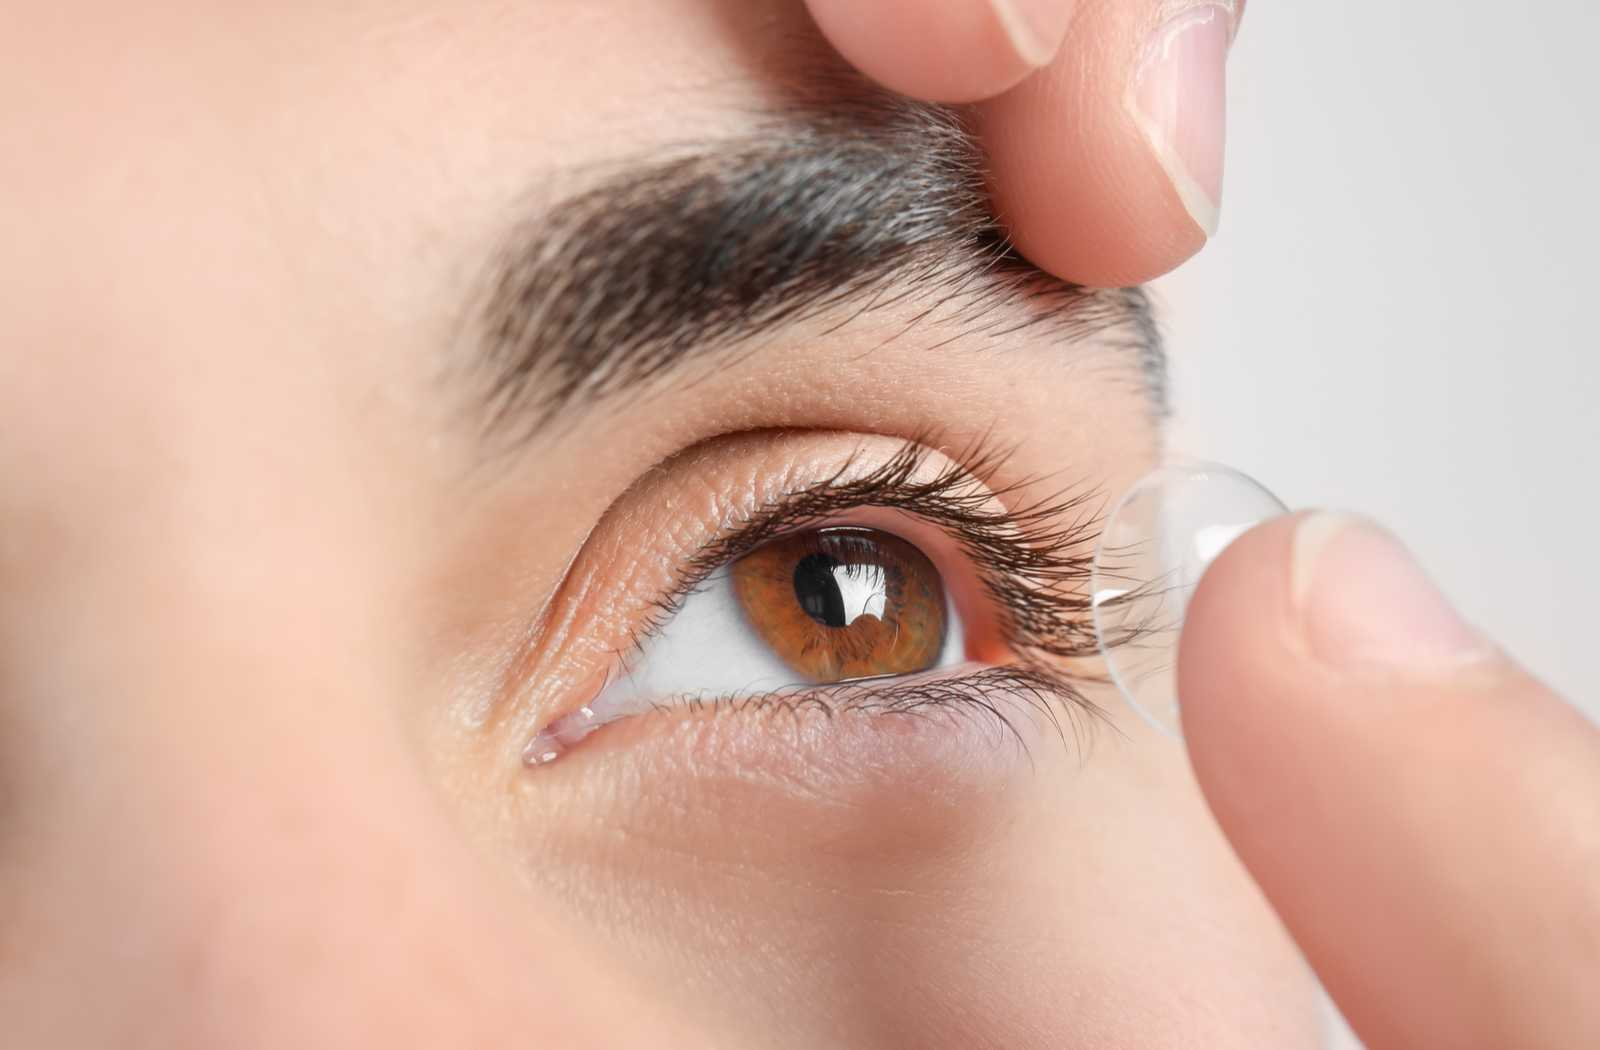 contact lenses applied by optimistic person in extreme closeup